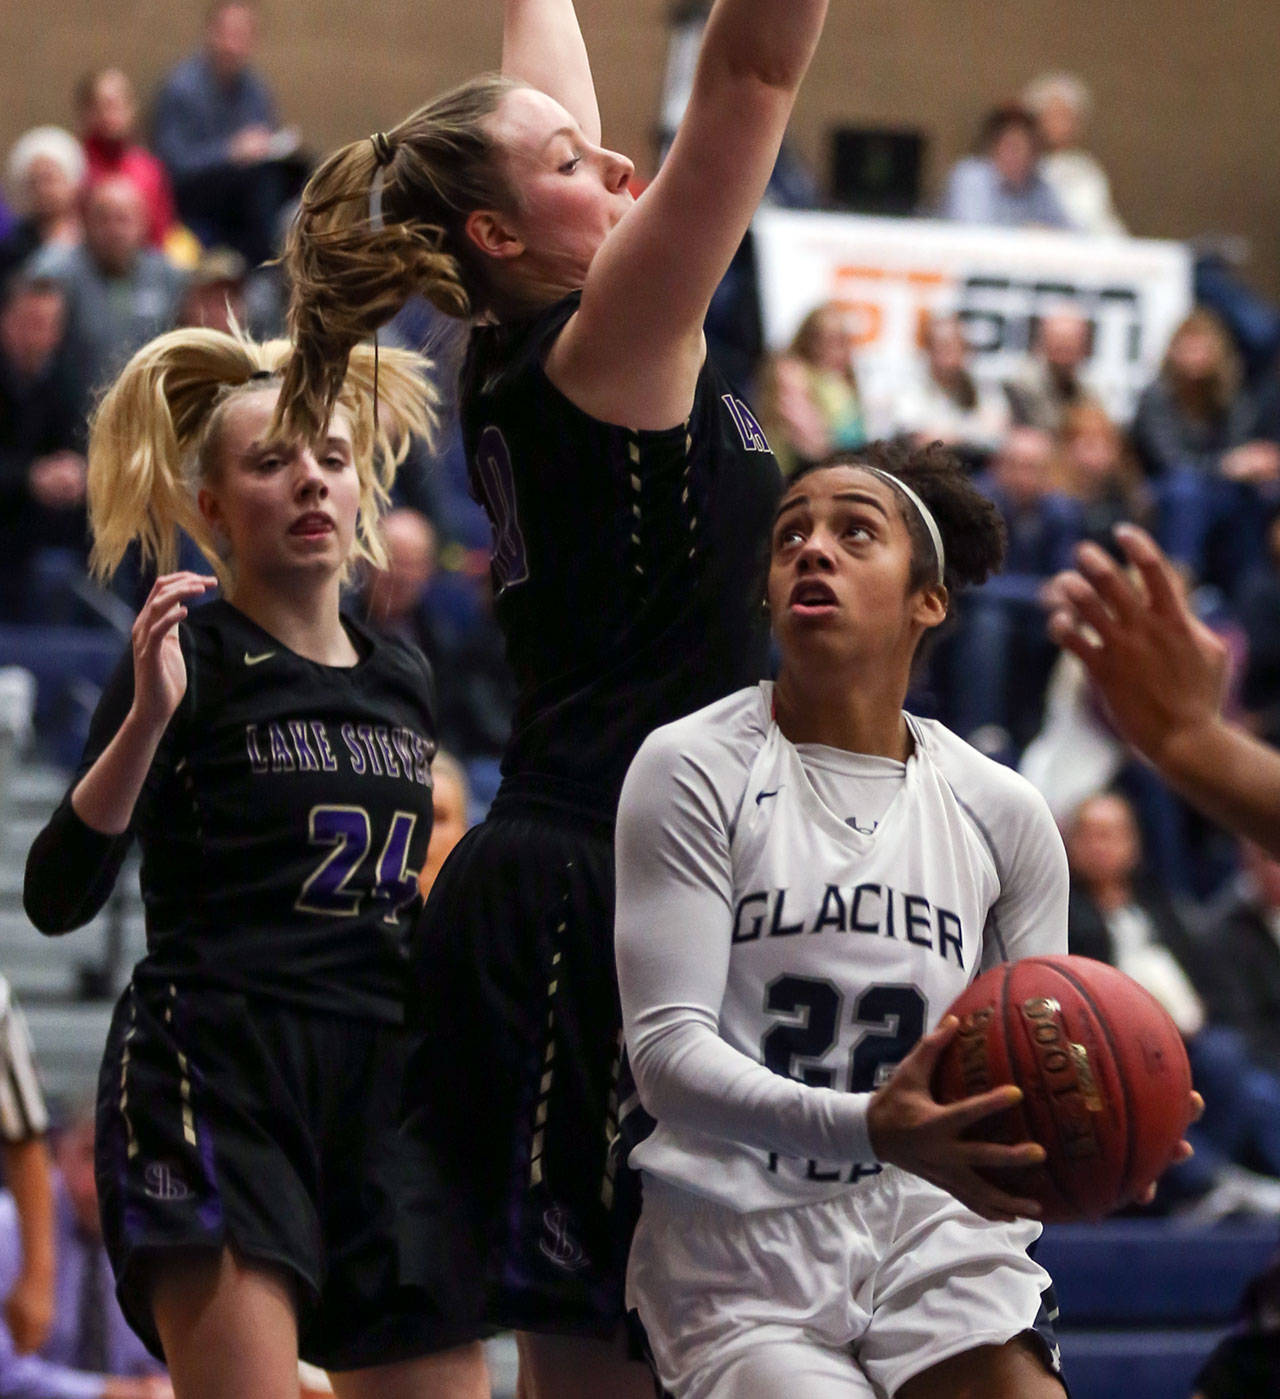 Glacier Peak sophomore guard Aaliyah Collins scored a game-high 20 points, including 16 in the second half. (Kevin Clark / The Herald)